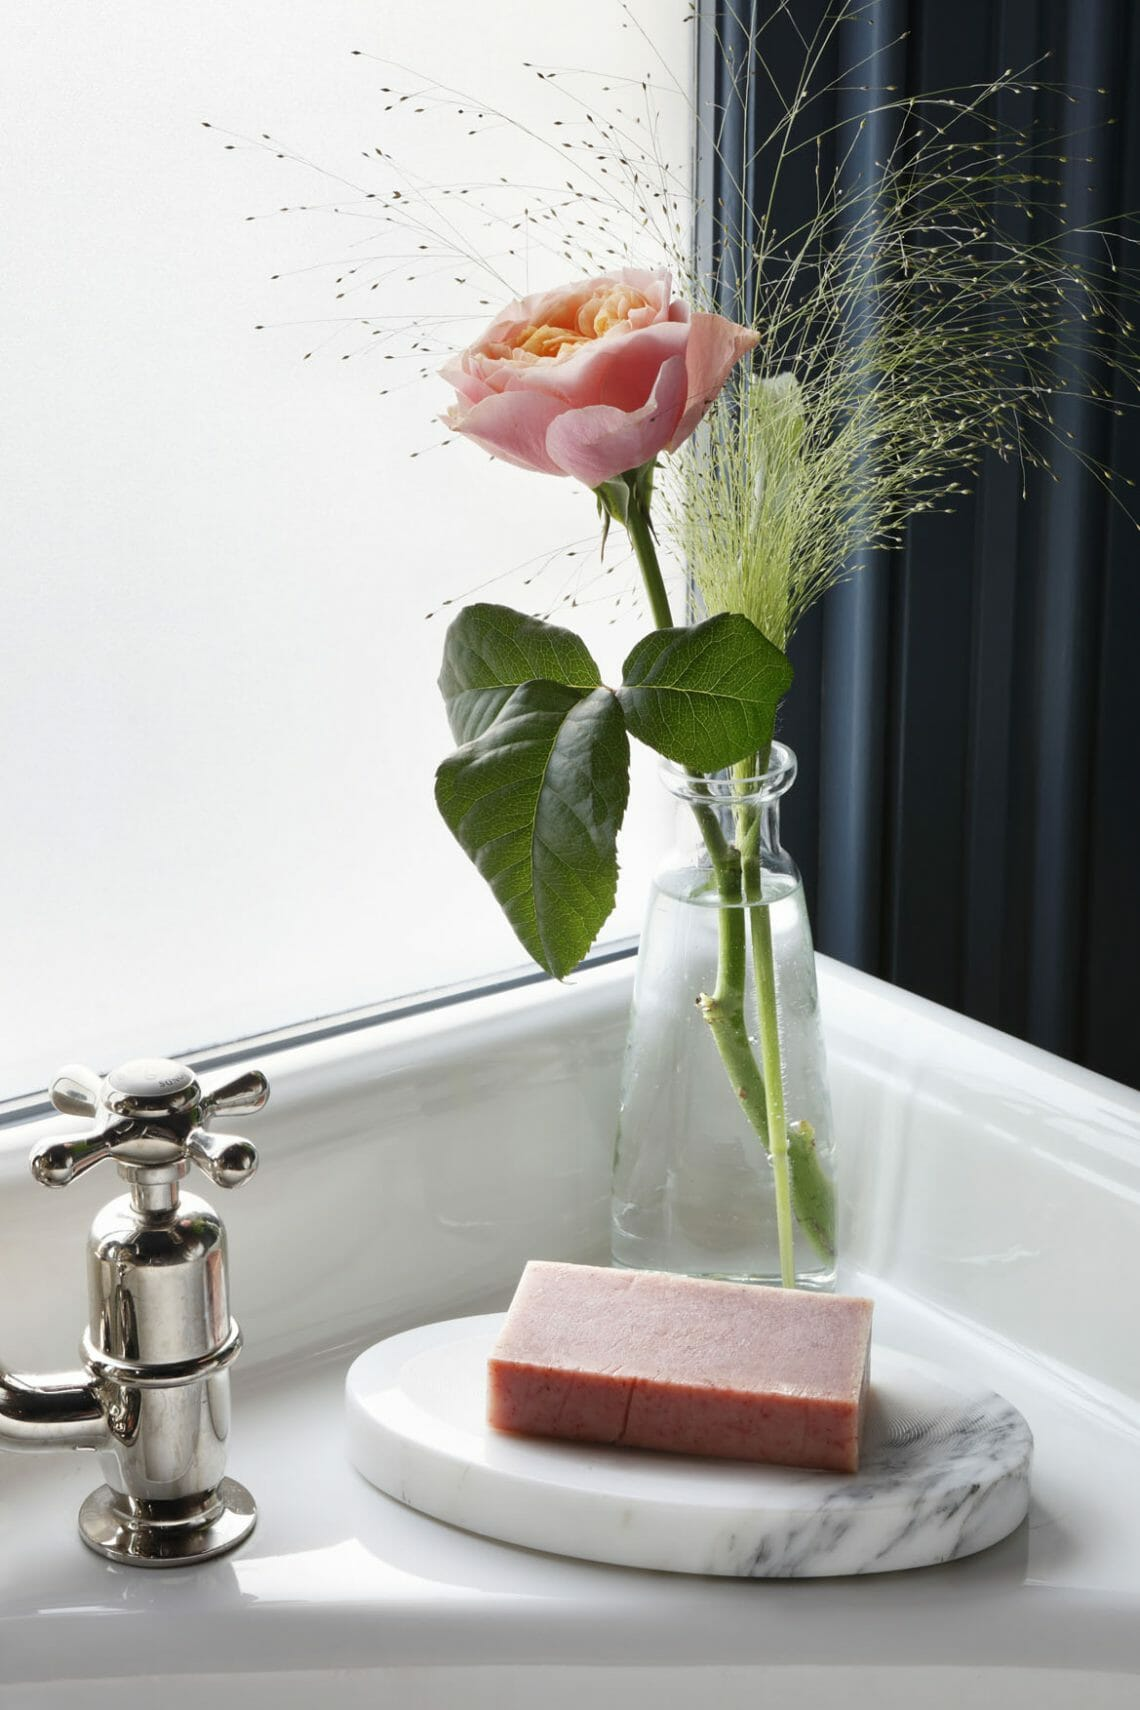 Drummonds Fox 3 LR Timeless Elegance in Bathroom Accessories: Marble Soap Dish EAT LOVE SAVOR International luxury lifestyle magazine and bookazines